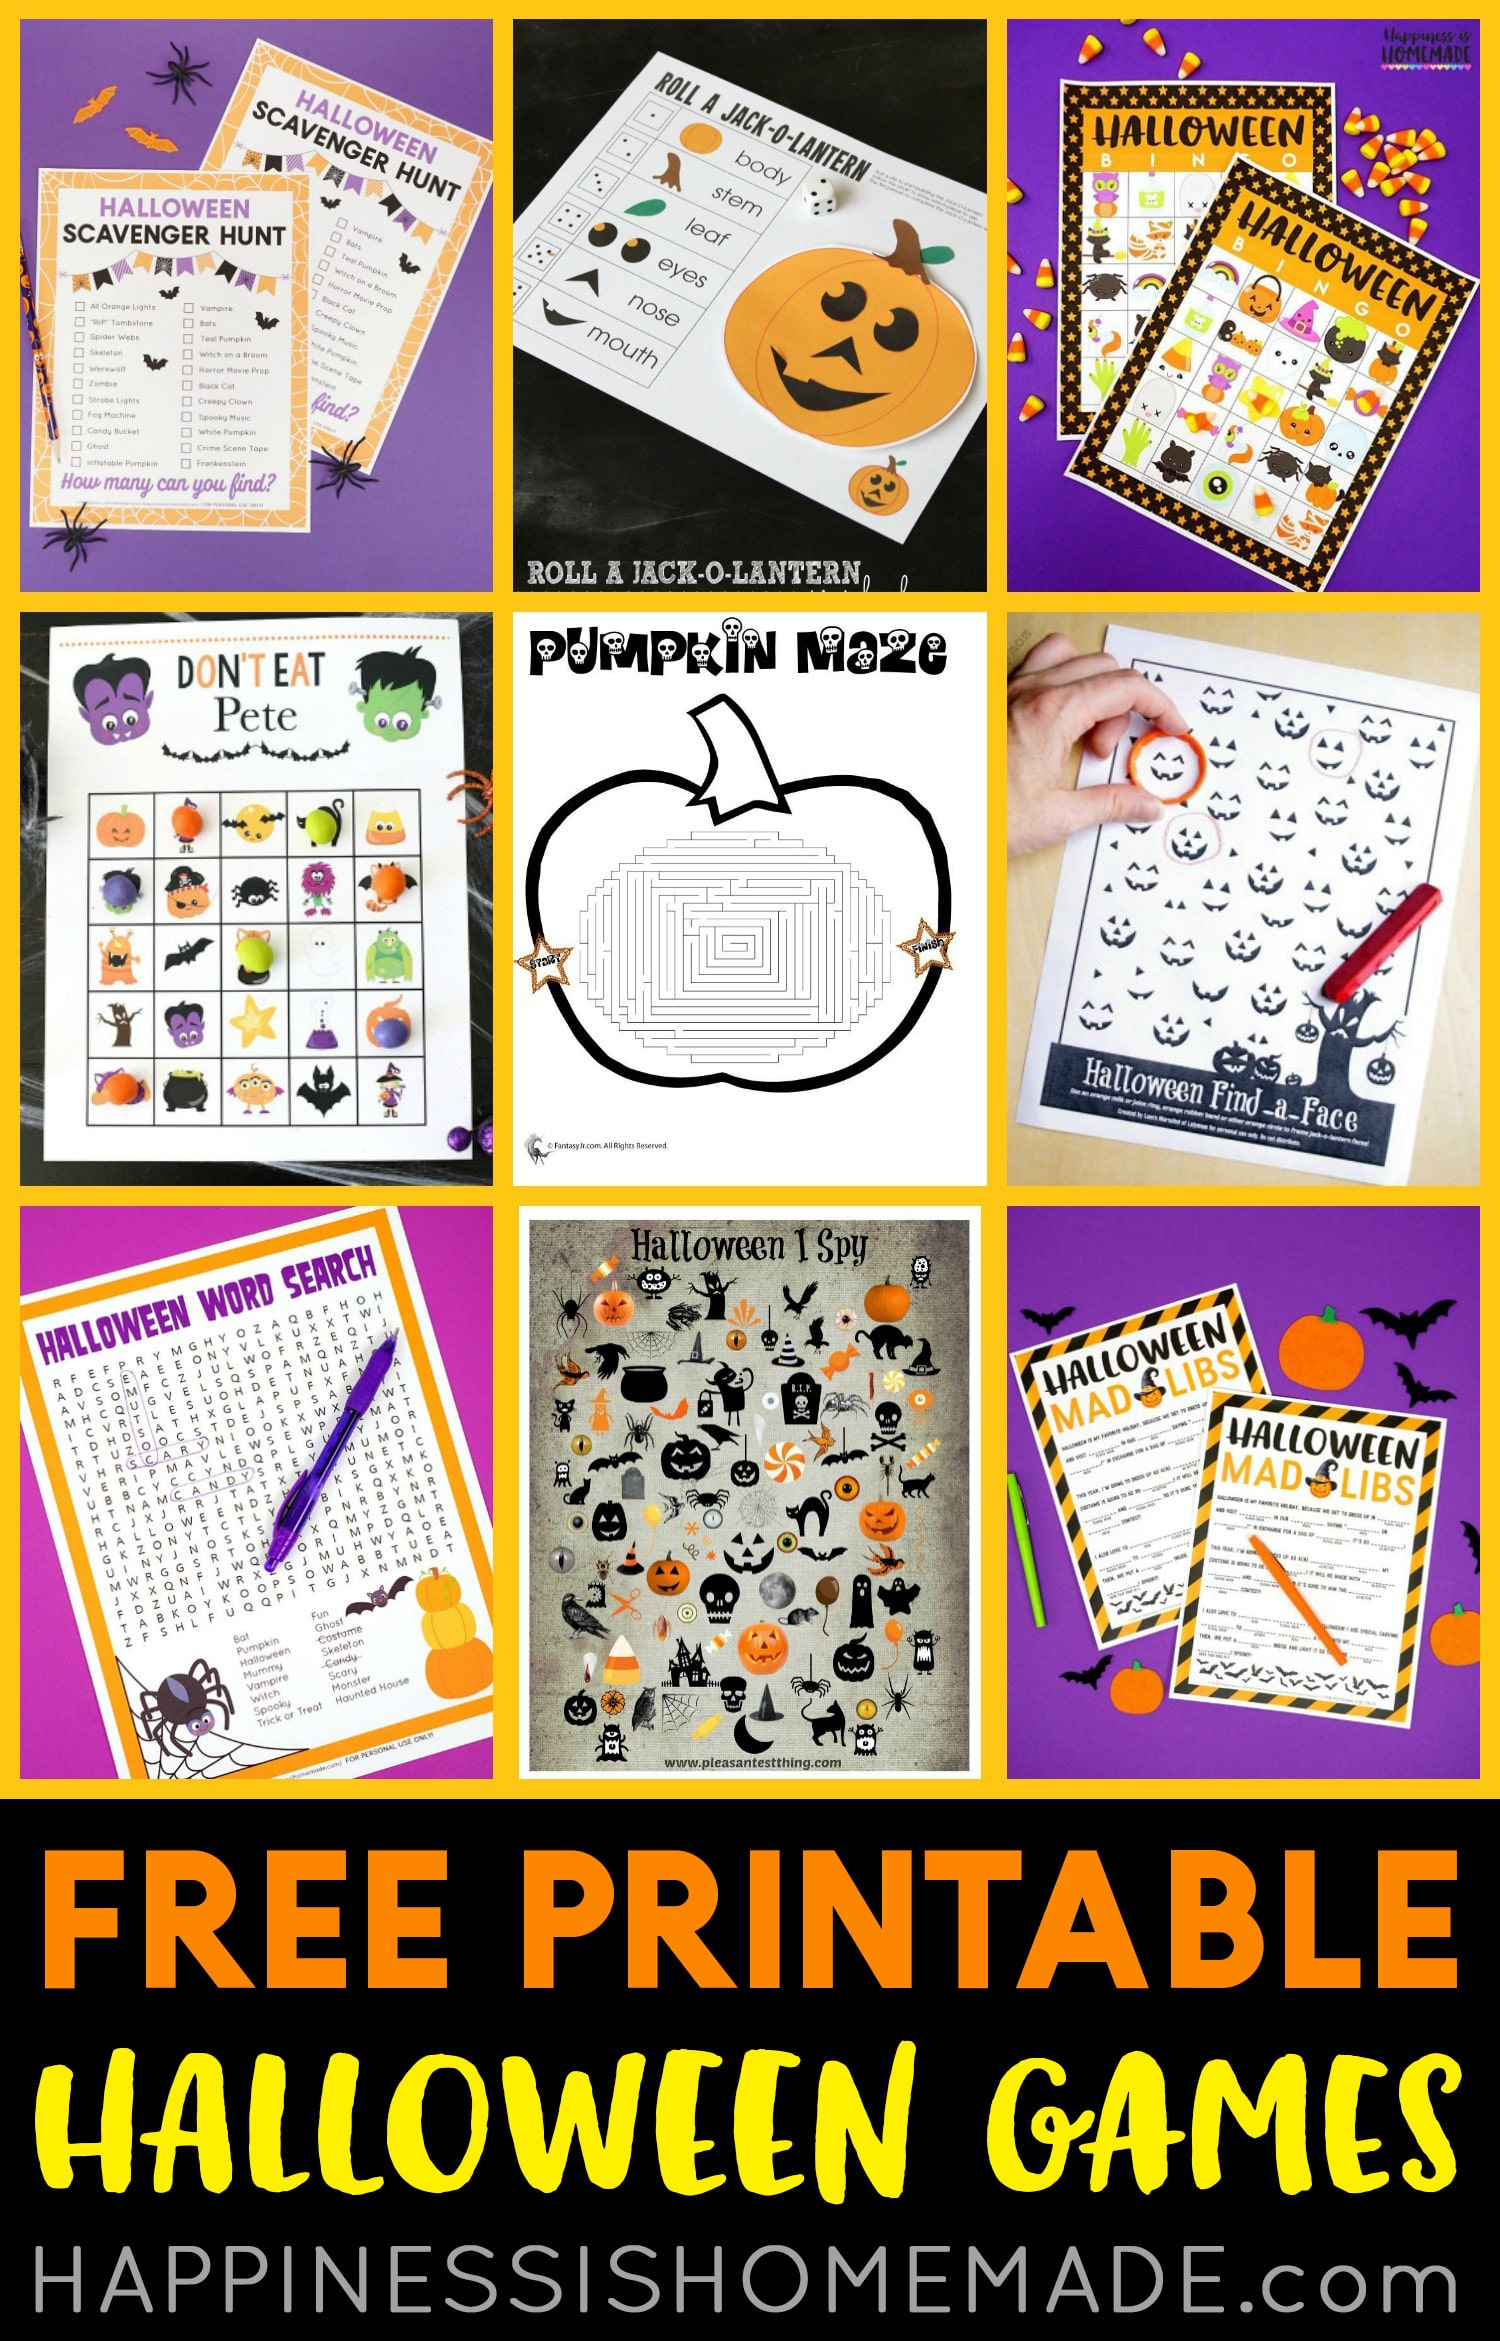 Collection of Free Printable Halloween Games for Kids and Adults